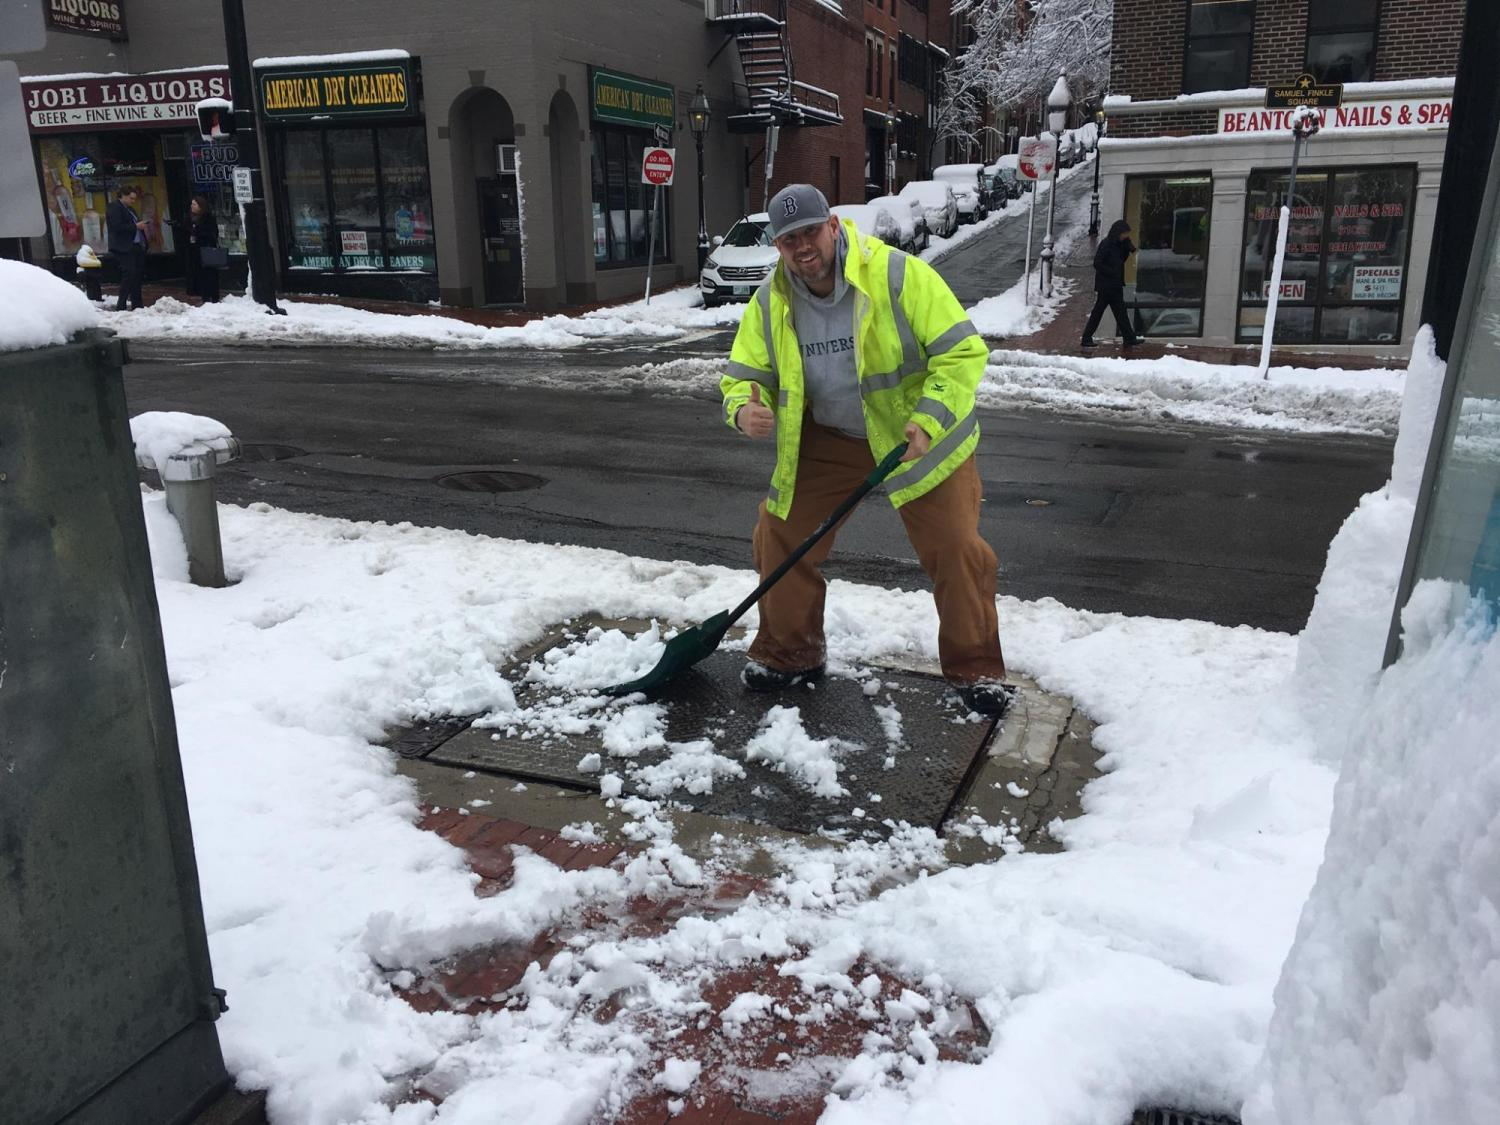 A crewman gives a thumbs up after he shoveled a hatch on the sidewalk near Bowdoin